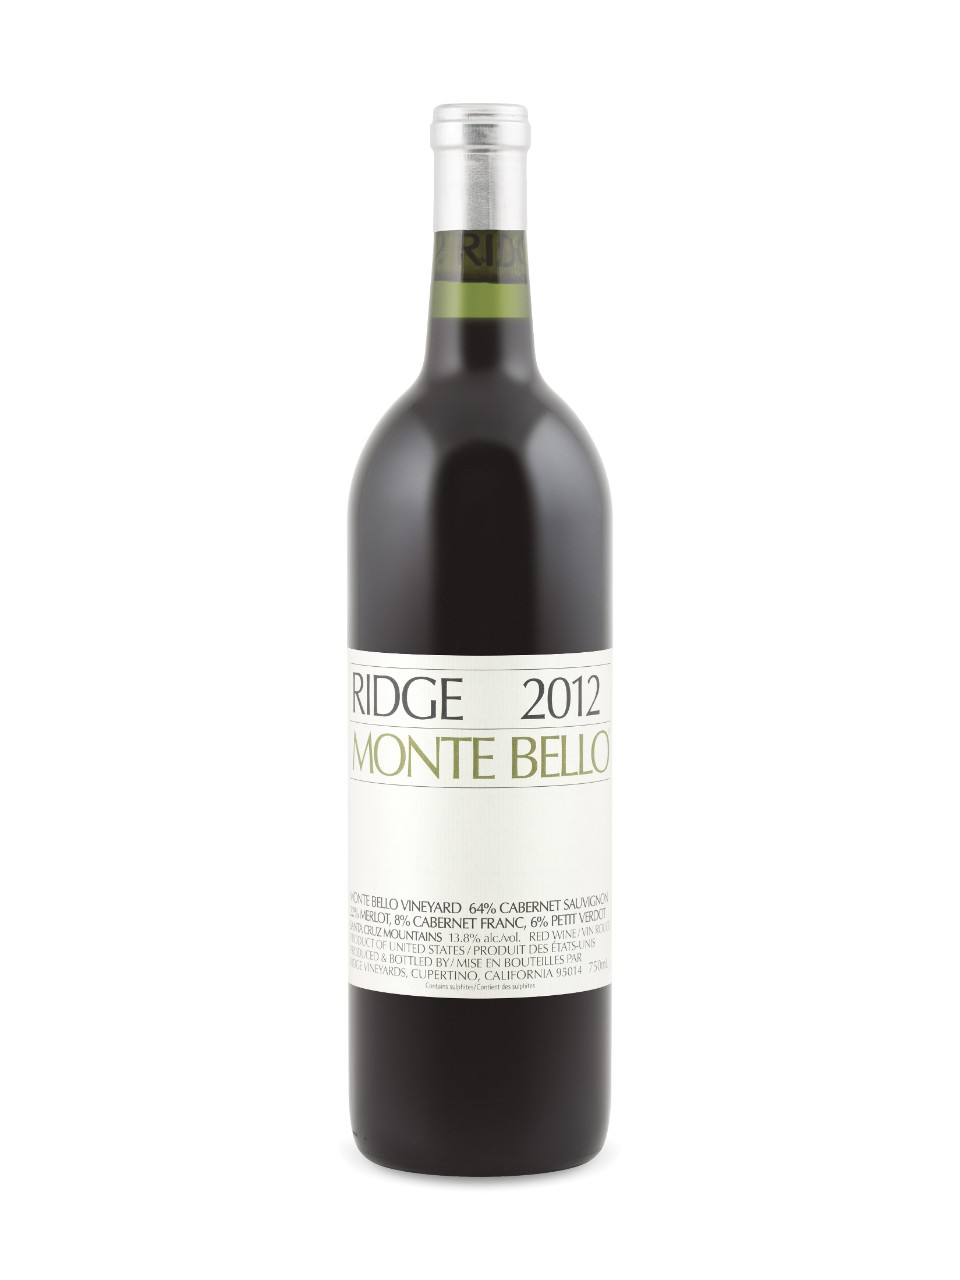 Monte Bello Ridge 2012